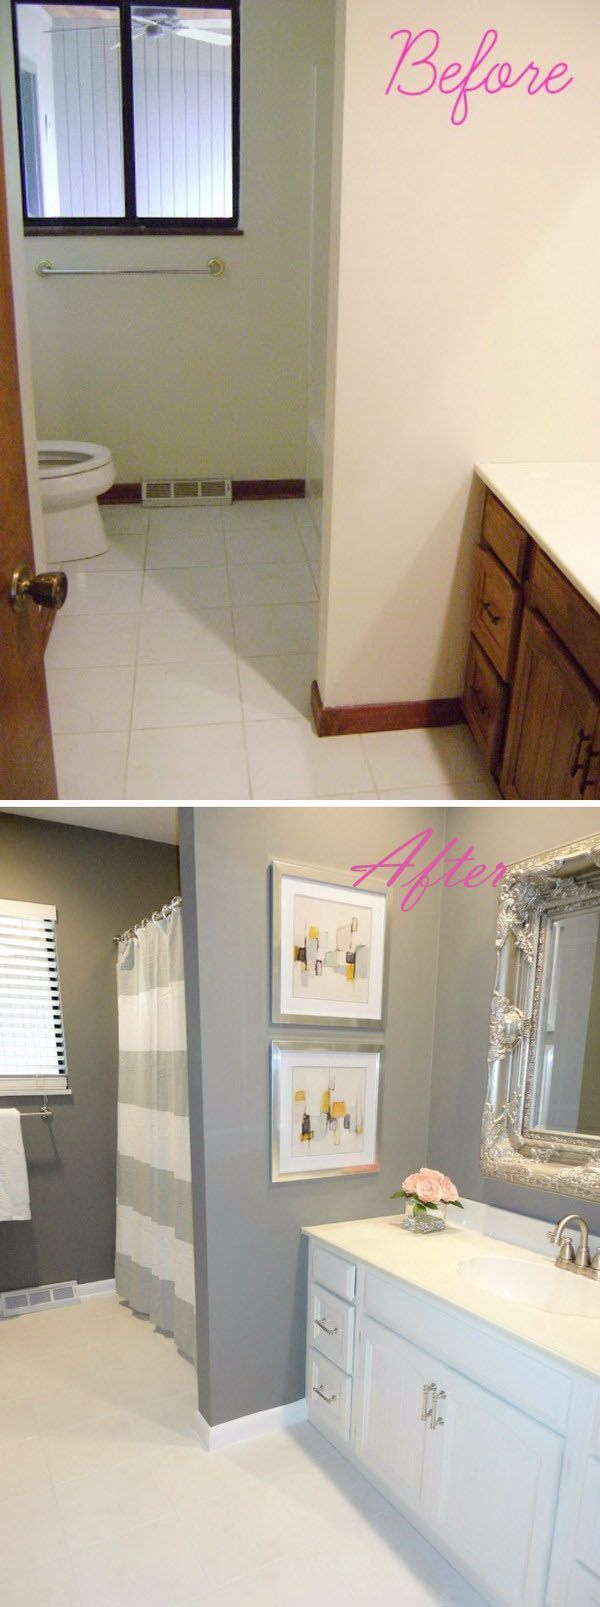 best 20 painting bathroom walls ideas on pinterest bathroom before and after 20 awesome bathroom makeovers